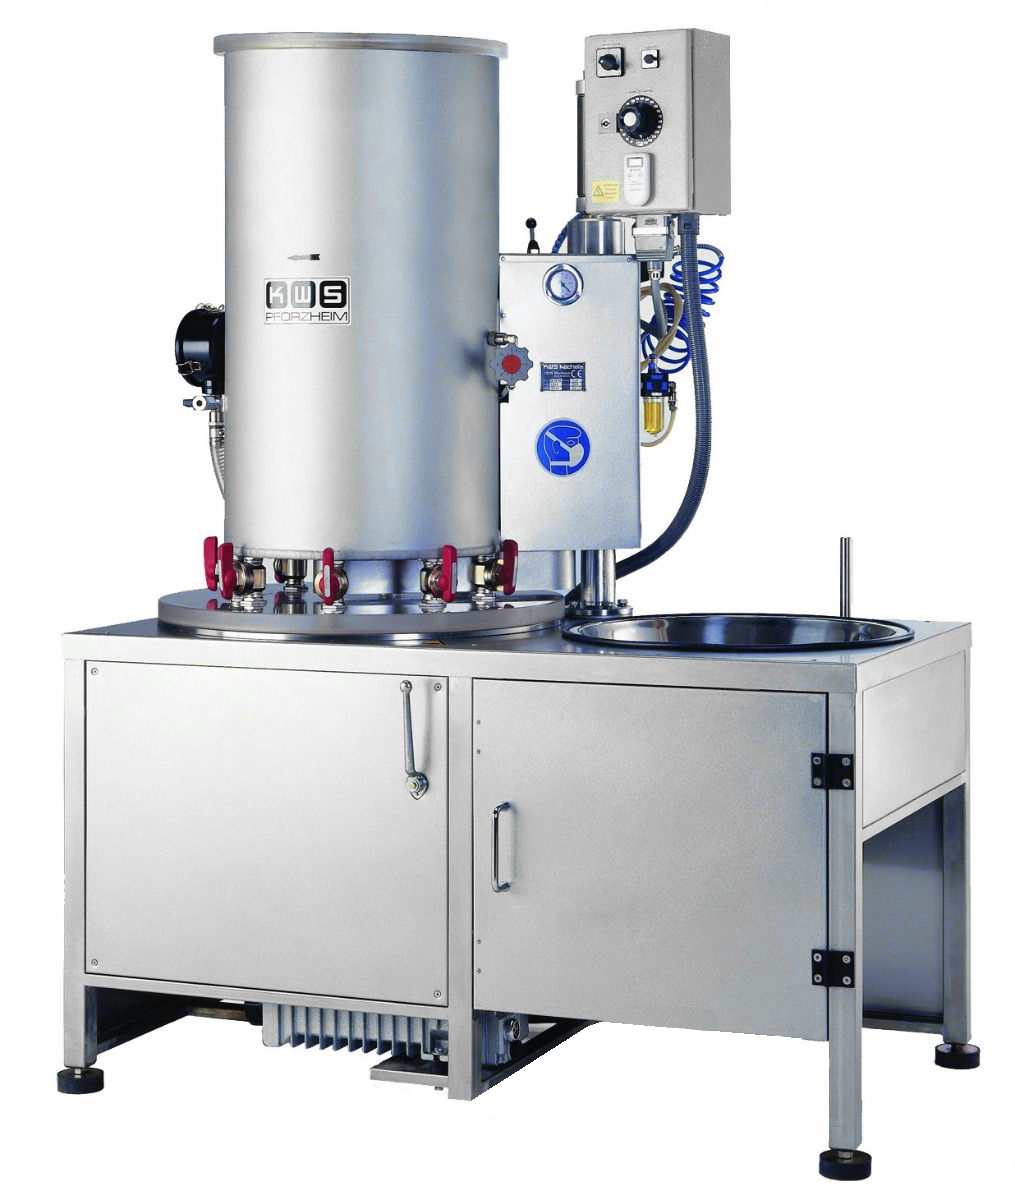 KWS EB20/30 - 8 Flask Investment Mixing Machine